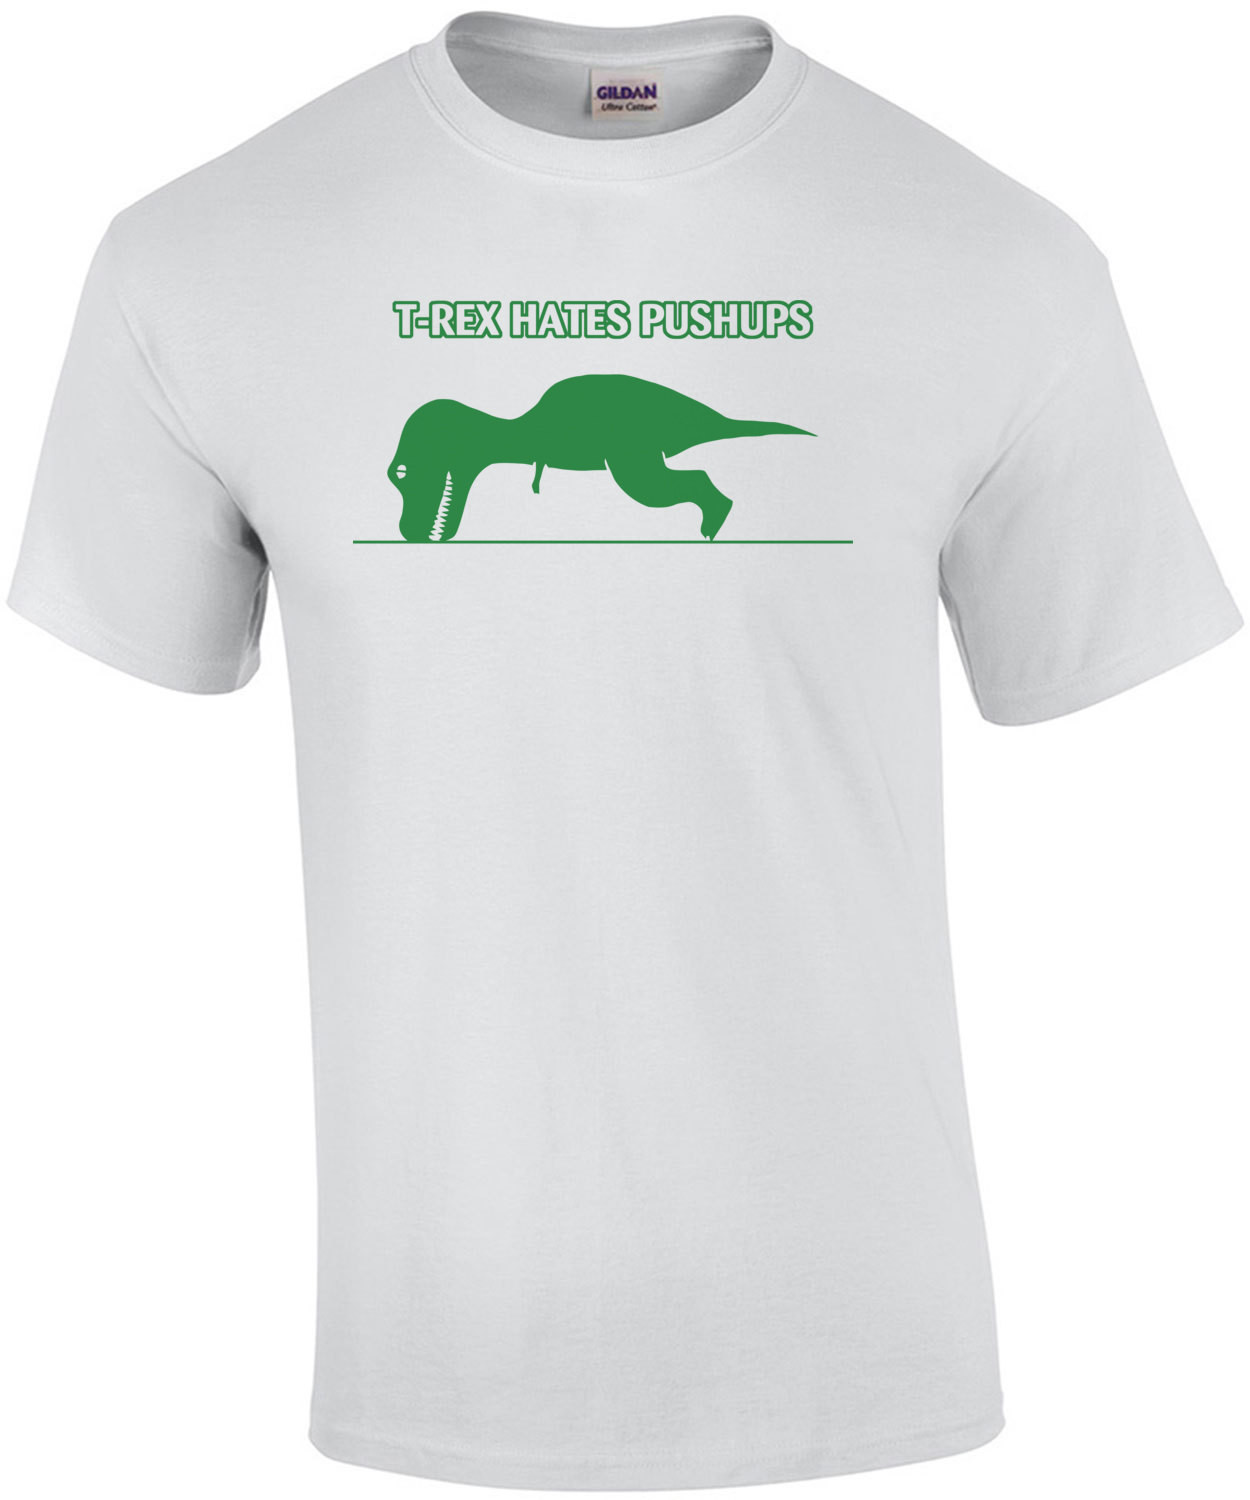 T-rex Hates Pushups Funny Kid's T-shirt